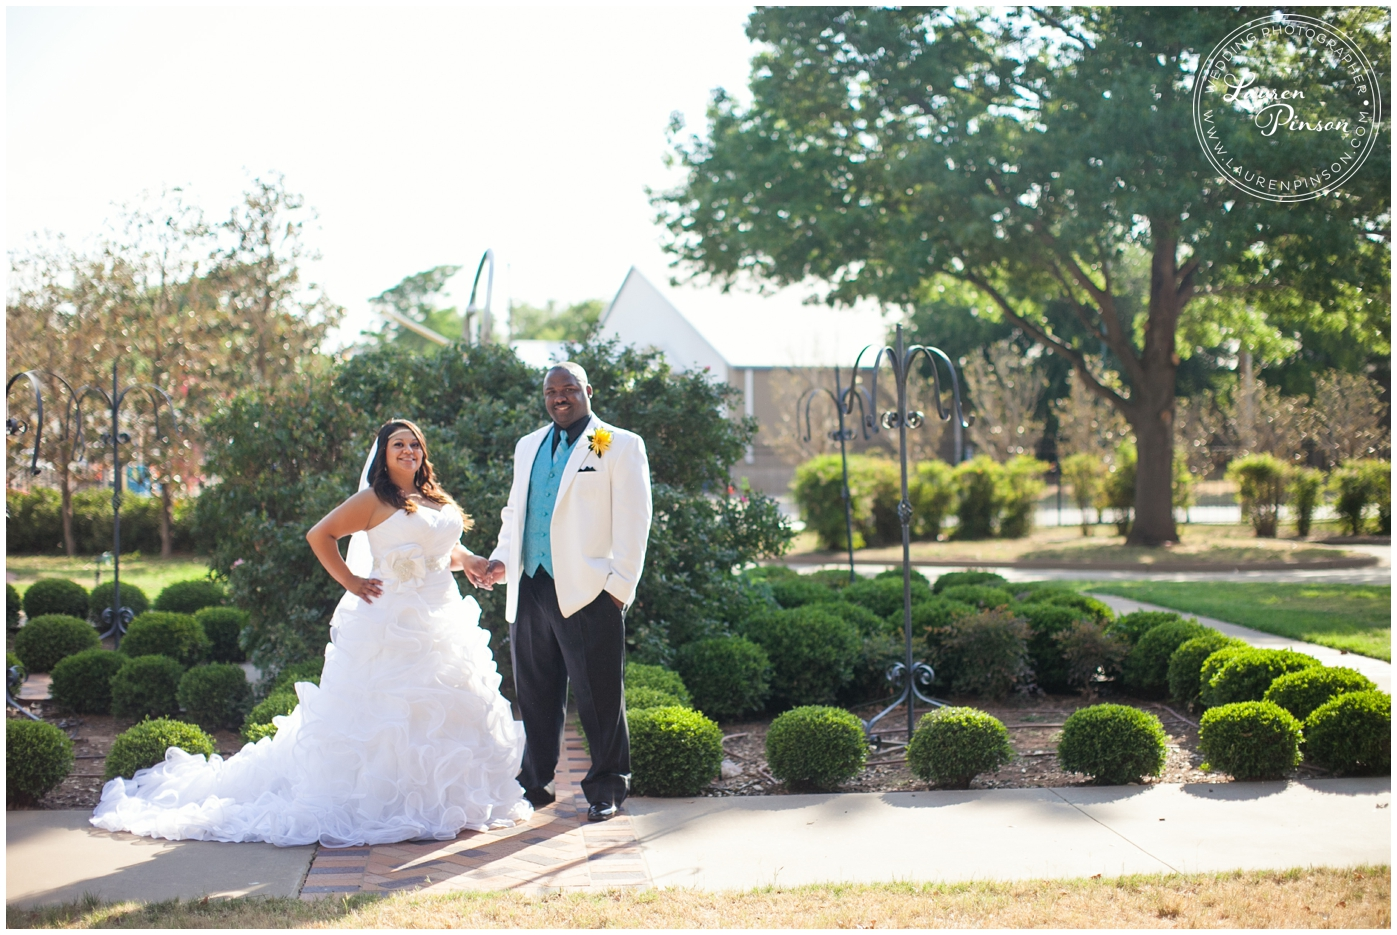 wichita-falls-wedding-photography-kemp-center-for-the-arts-our-lady-queen-of-peace_0161.jpg